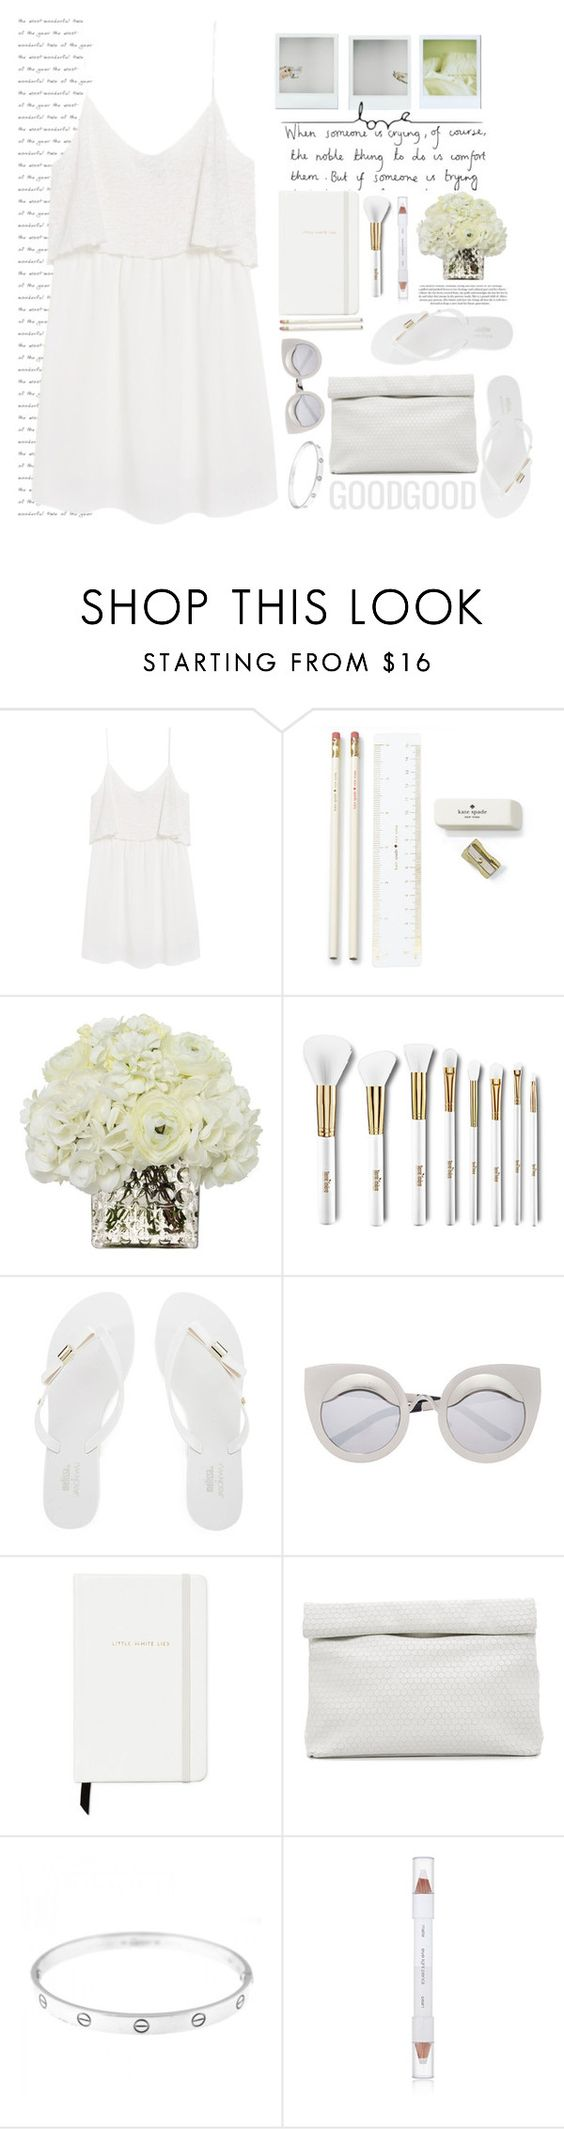 """""""YOUR GOOD STYLE WHITE"""" by licethfashion ❤ liked on Polyvore featuring Pixie, MANGO, Kate Spade, Diane James, Terre Mère, Melissa, Marie Turnor, Cartier, shu uemura and polyvoreeditorial"""